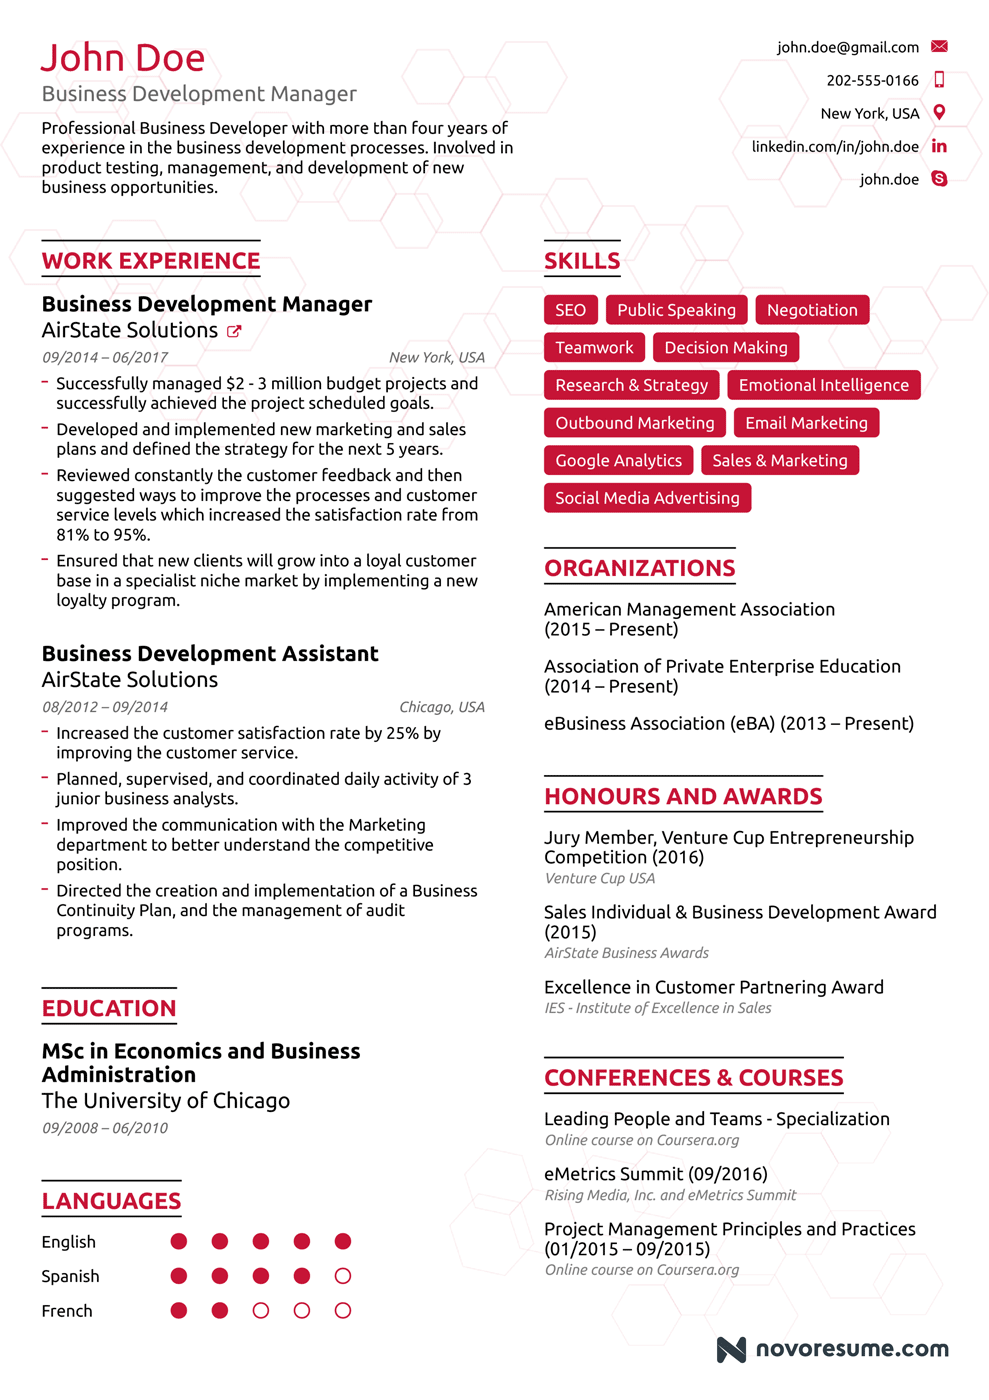 Business Development Manager Resume Example 2019